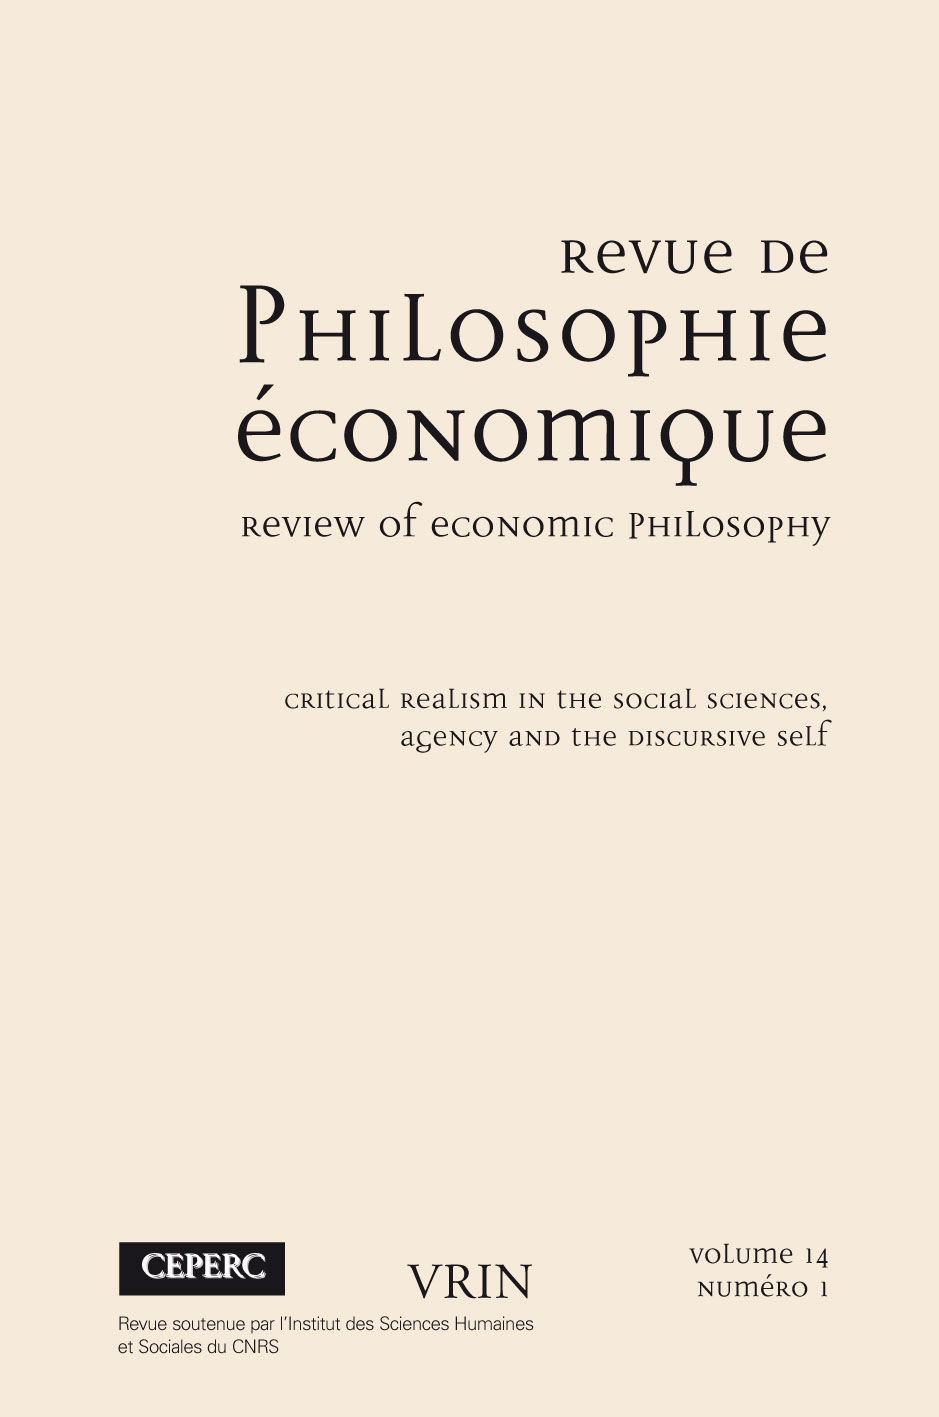 Transforming Economics: Perspectives on the Critical Realist Project (Economics as Social Theory)